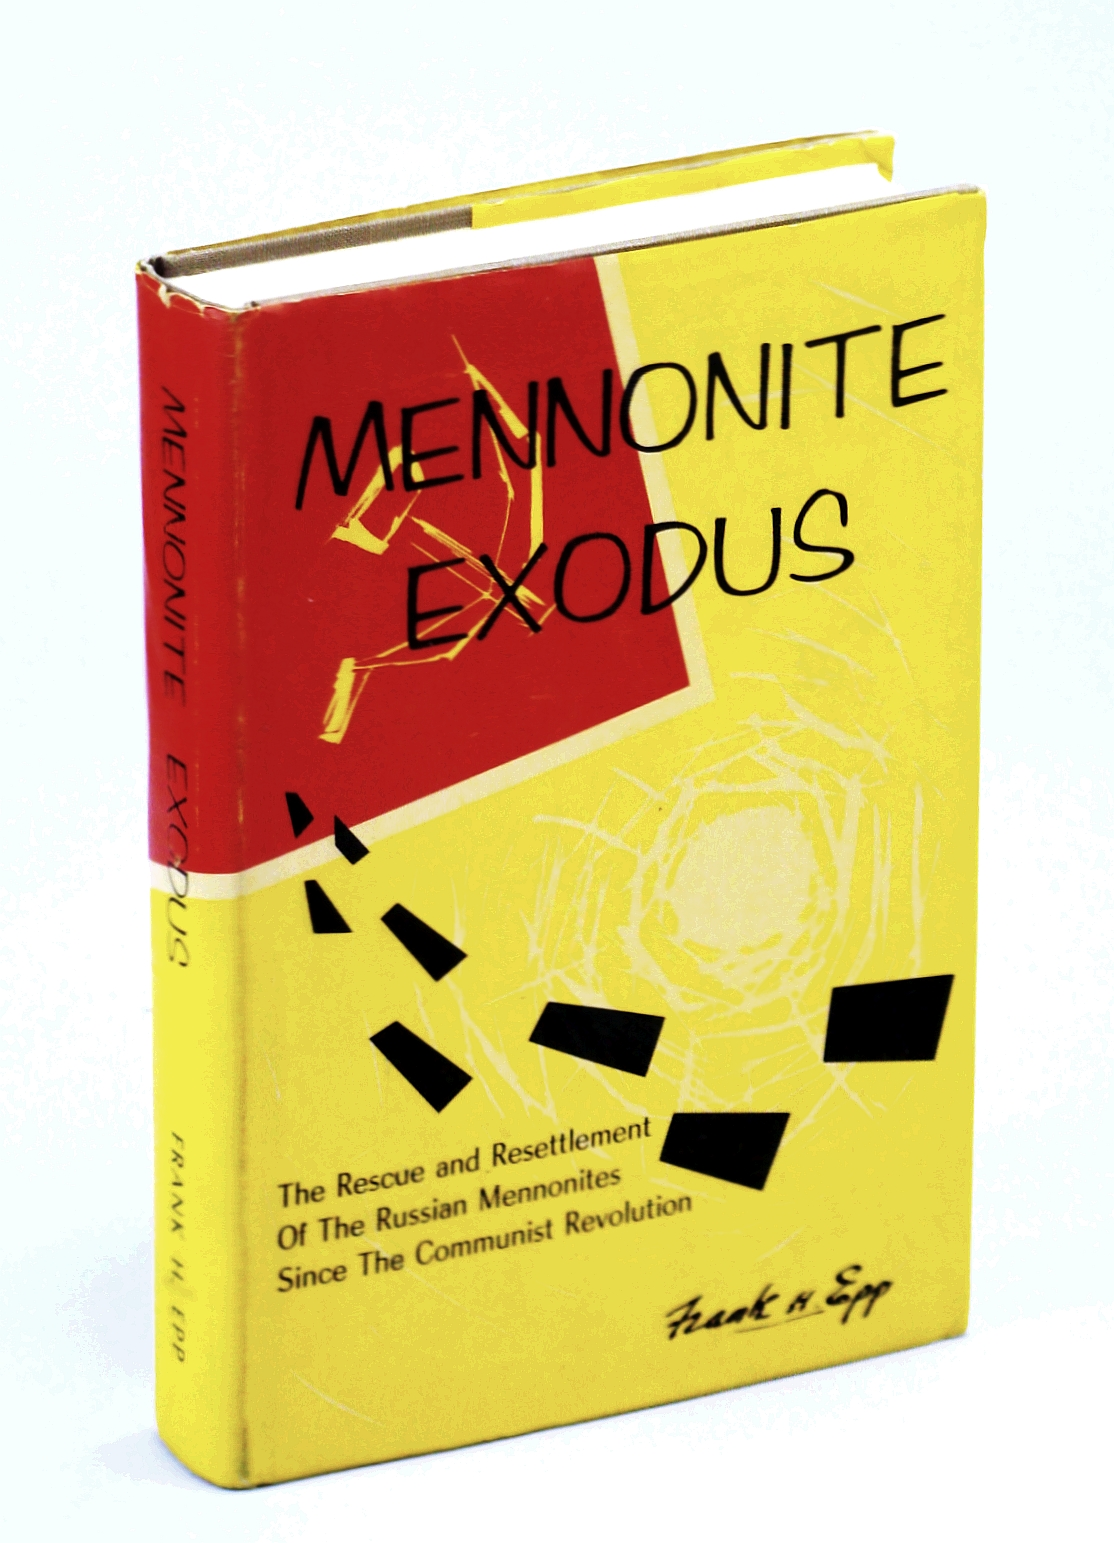 Mennonite Exodus : The Rescue and Resettlement of the Russian Mennonites Since the Communist Revolution